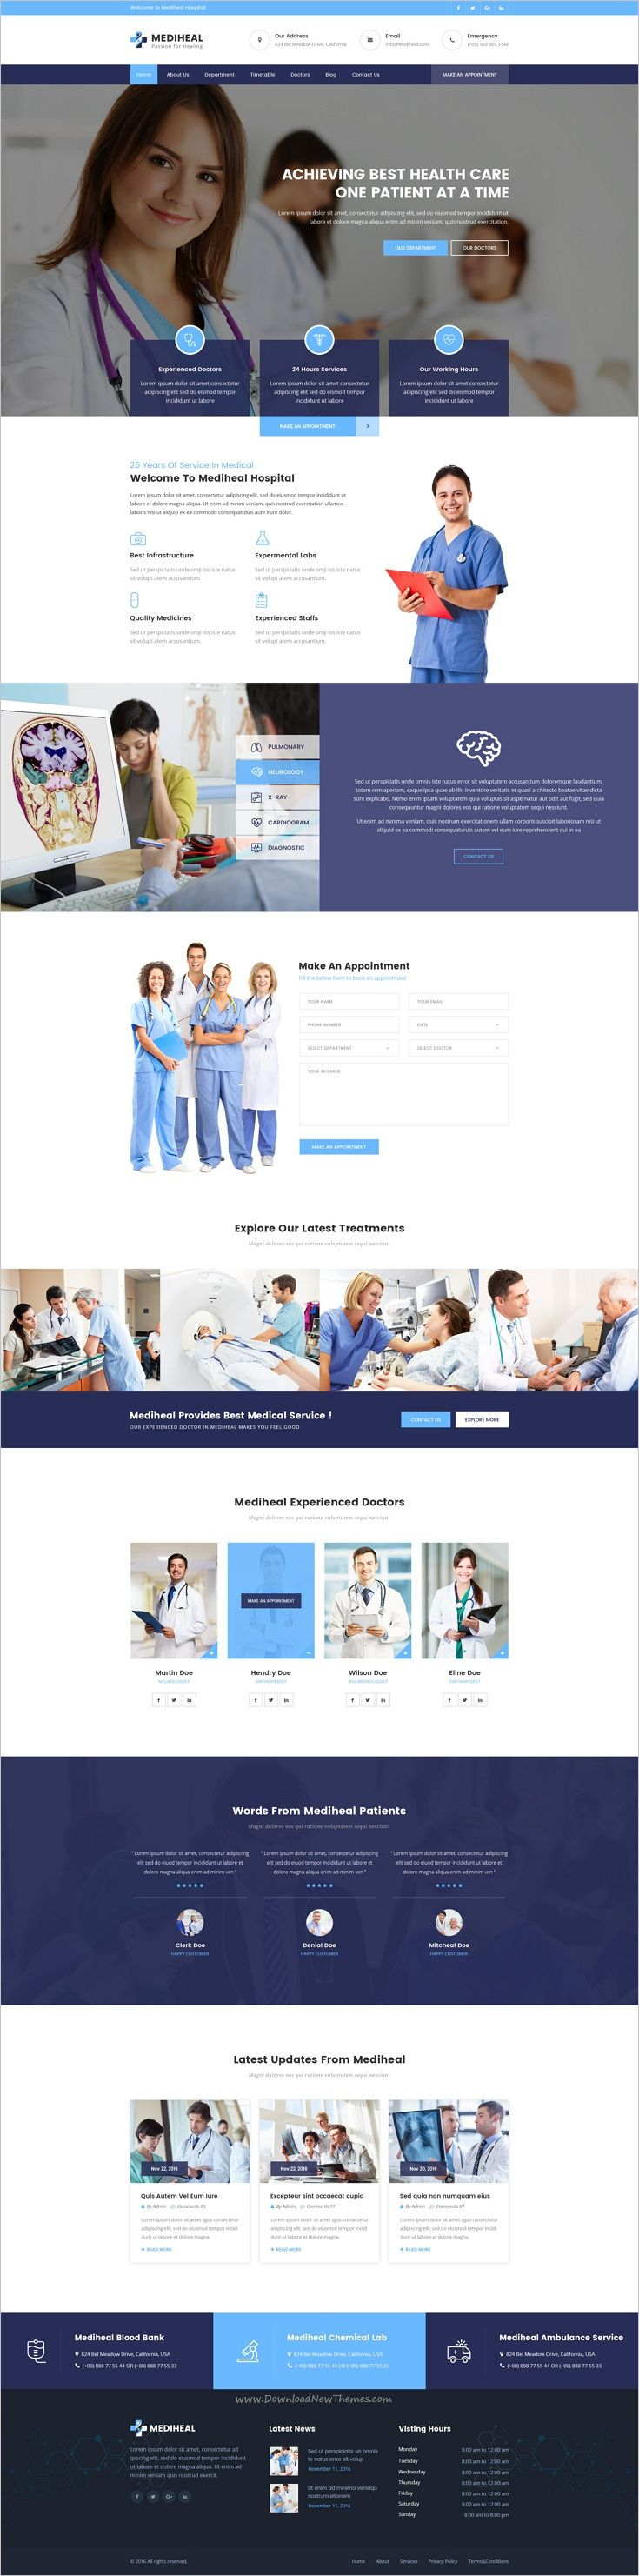 MediHeal is the best premium #PSD template for #medical and #hospitals website with 3 unique homepage layouts and 21 organized PSD pages download now➩ https://themeforest.net/item/mediheal-medical-hospital-psd-template/19056441?ref=Datasata